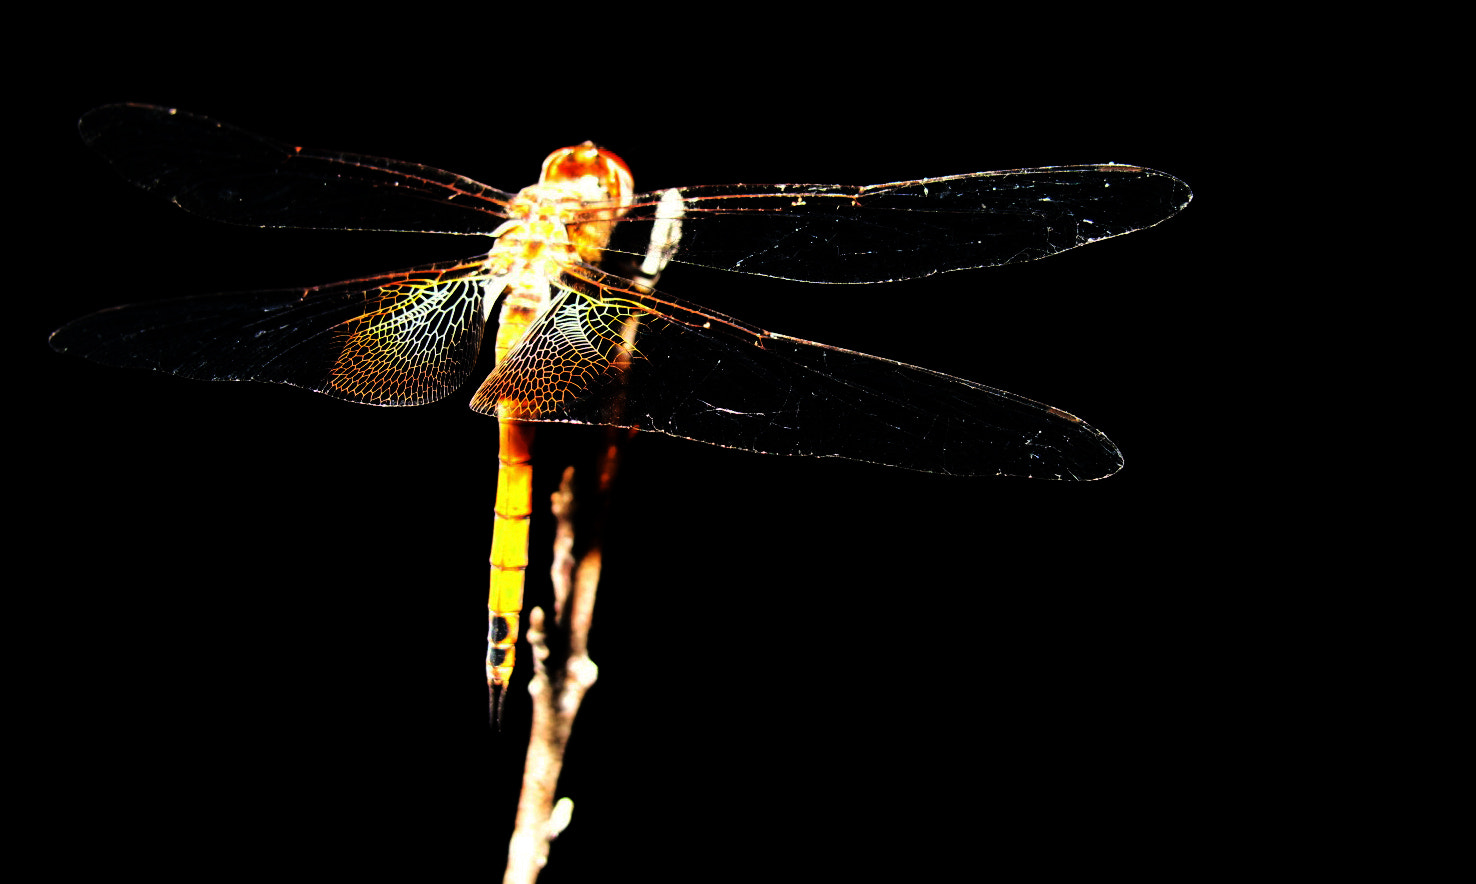 Photograph Dragonfly  by Rick Rodríguez on 500px